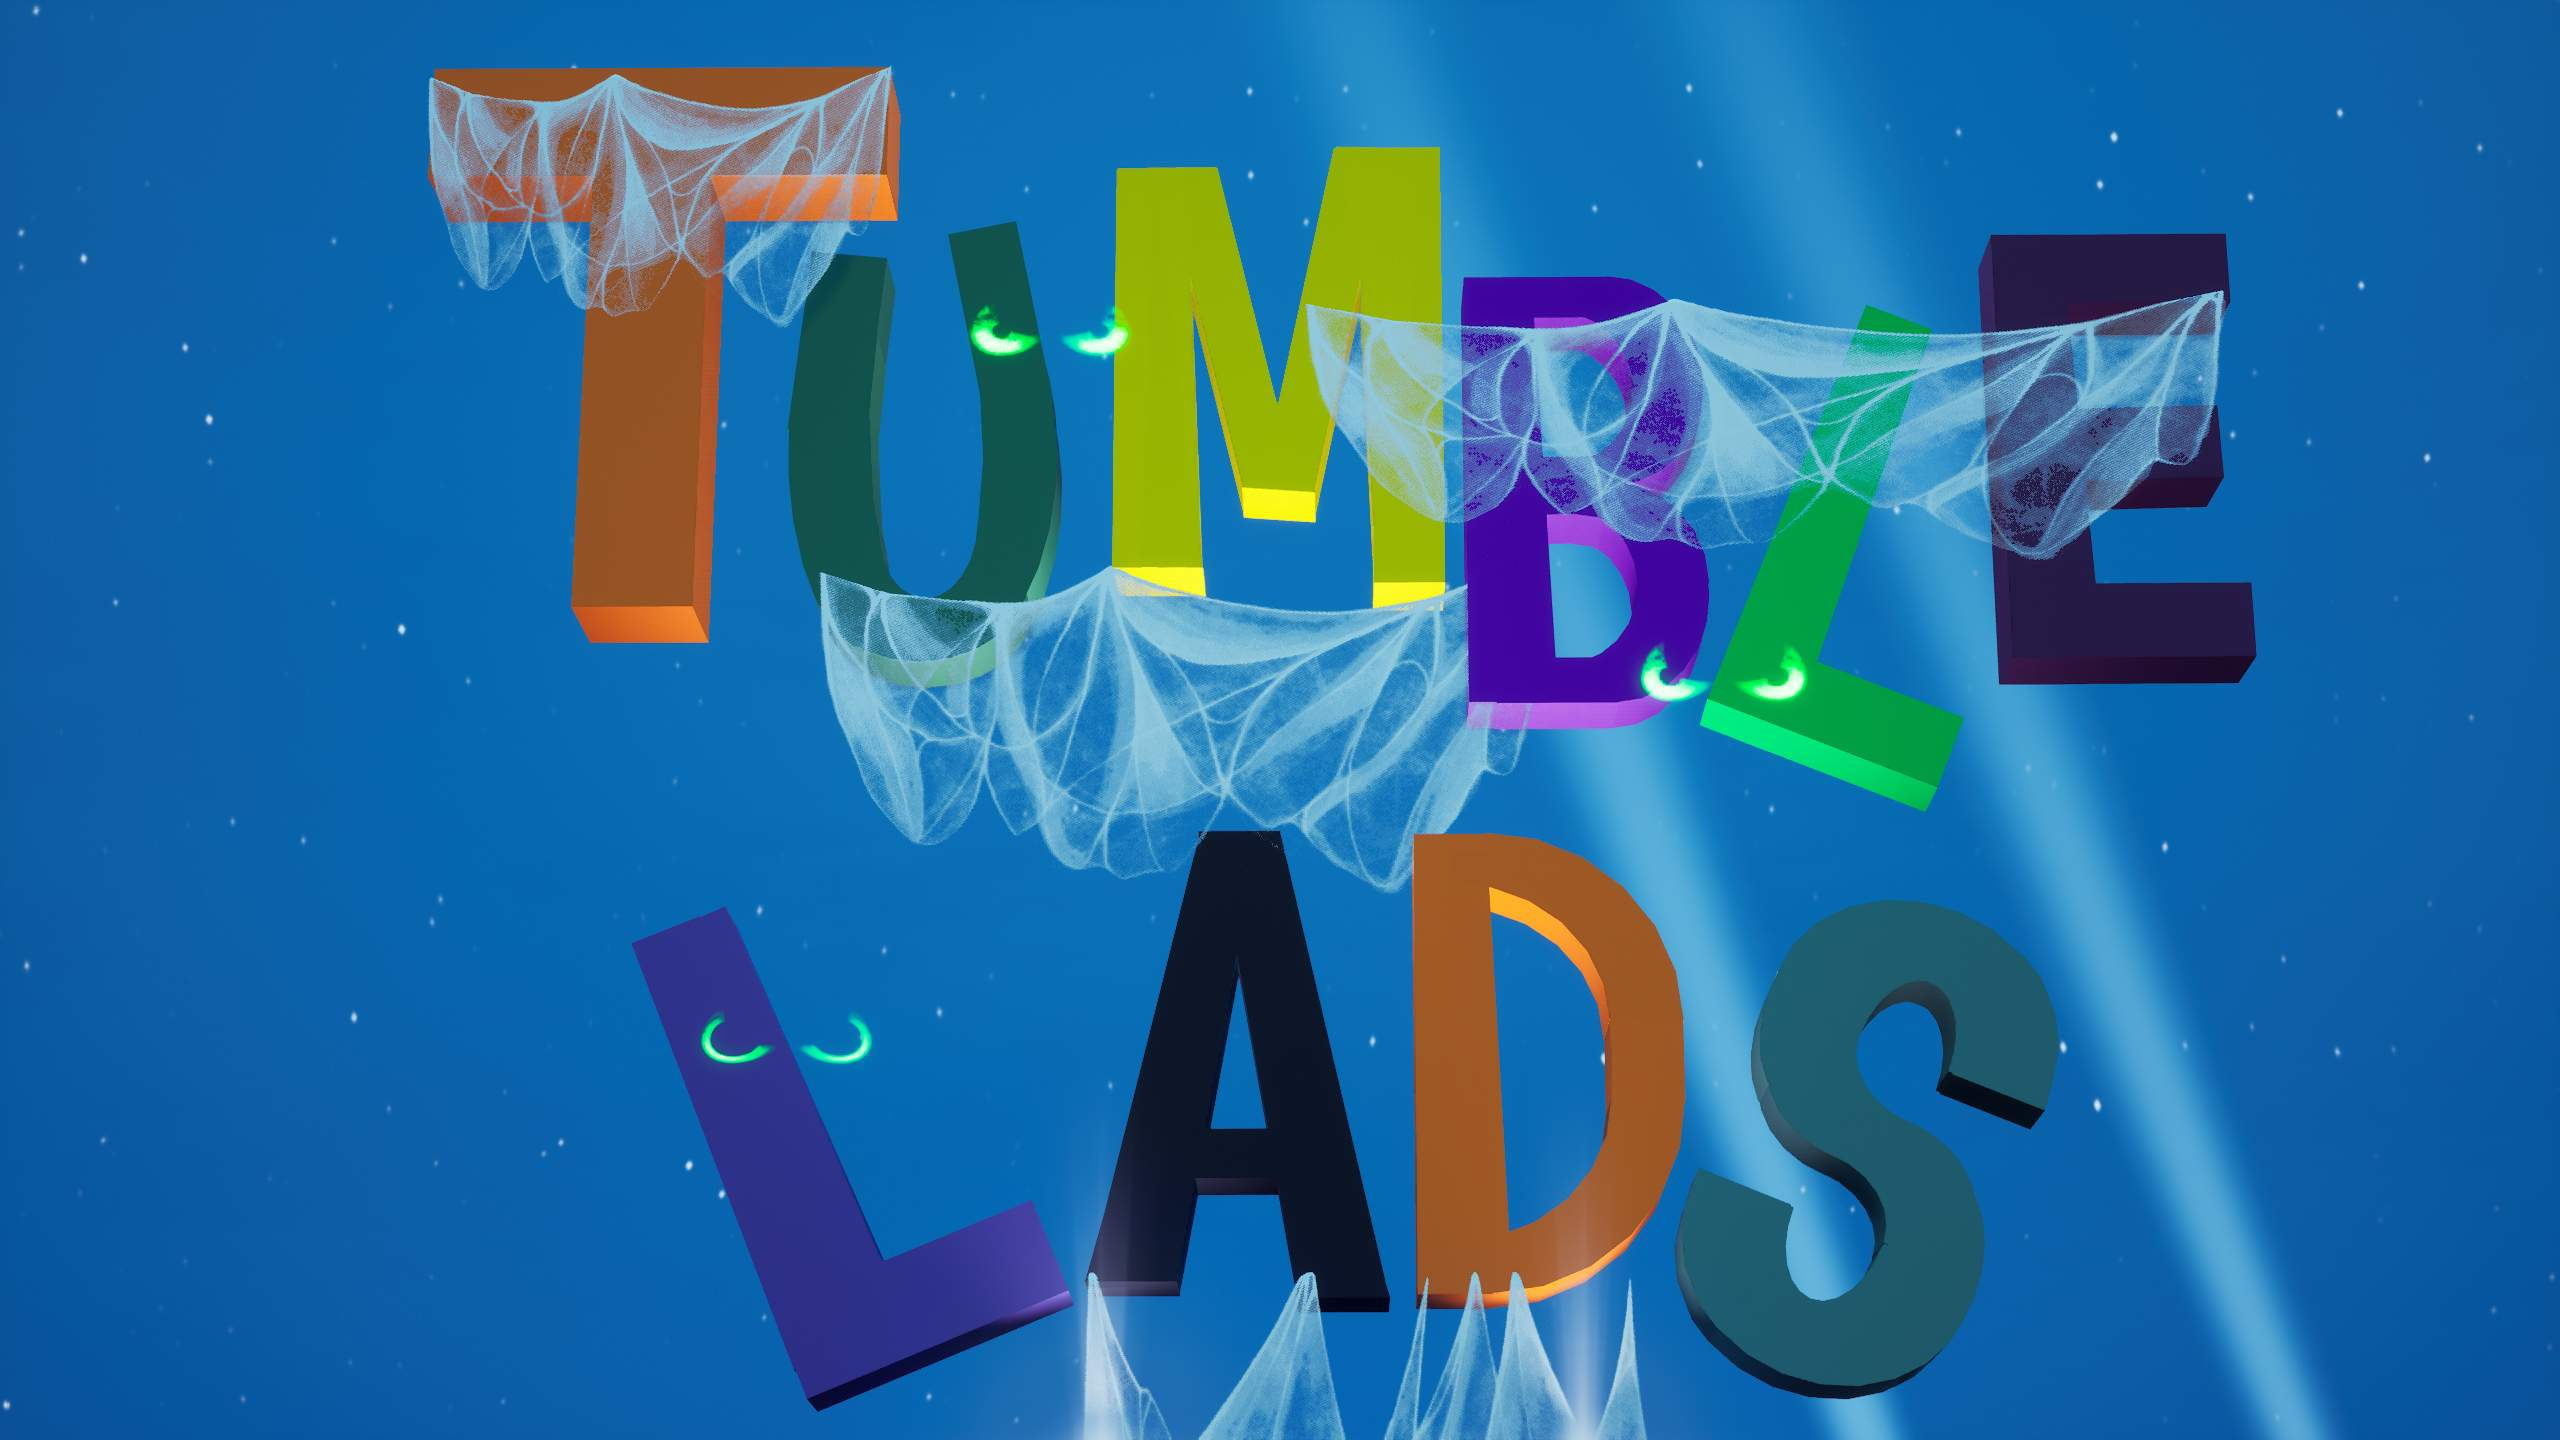 TUMBLE LADS - FRIGHT